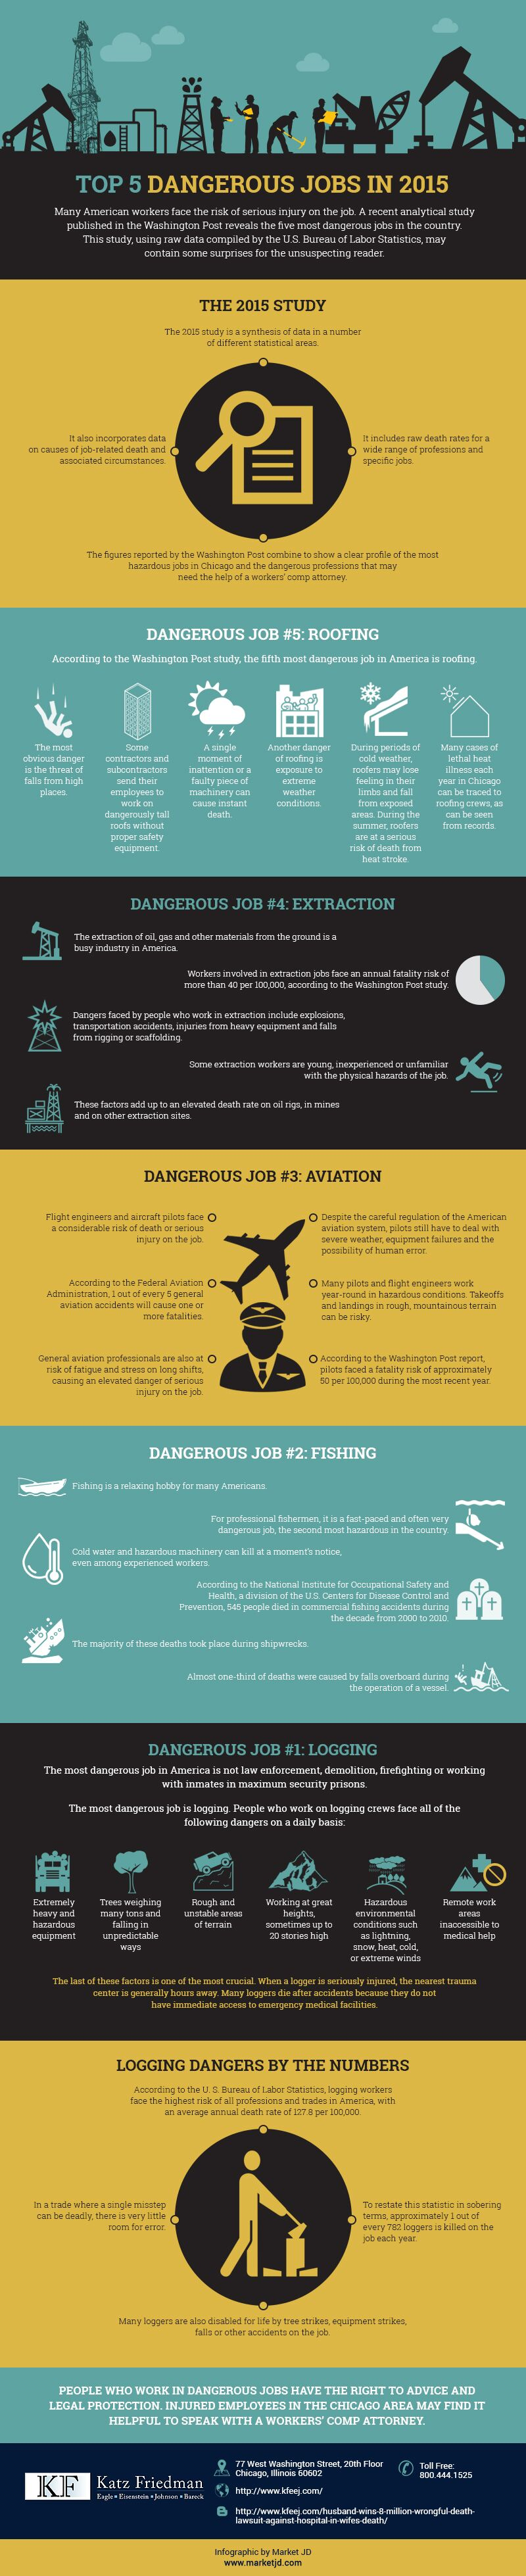 Minkow_MS-32_Top-Five-Dangerous-Jobs-in-2015